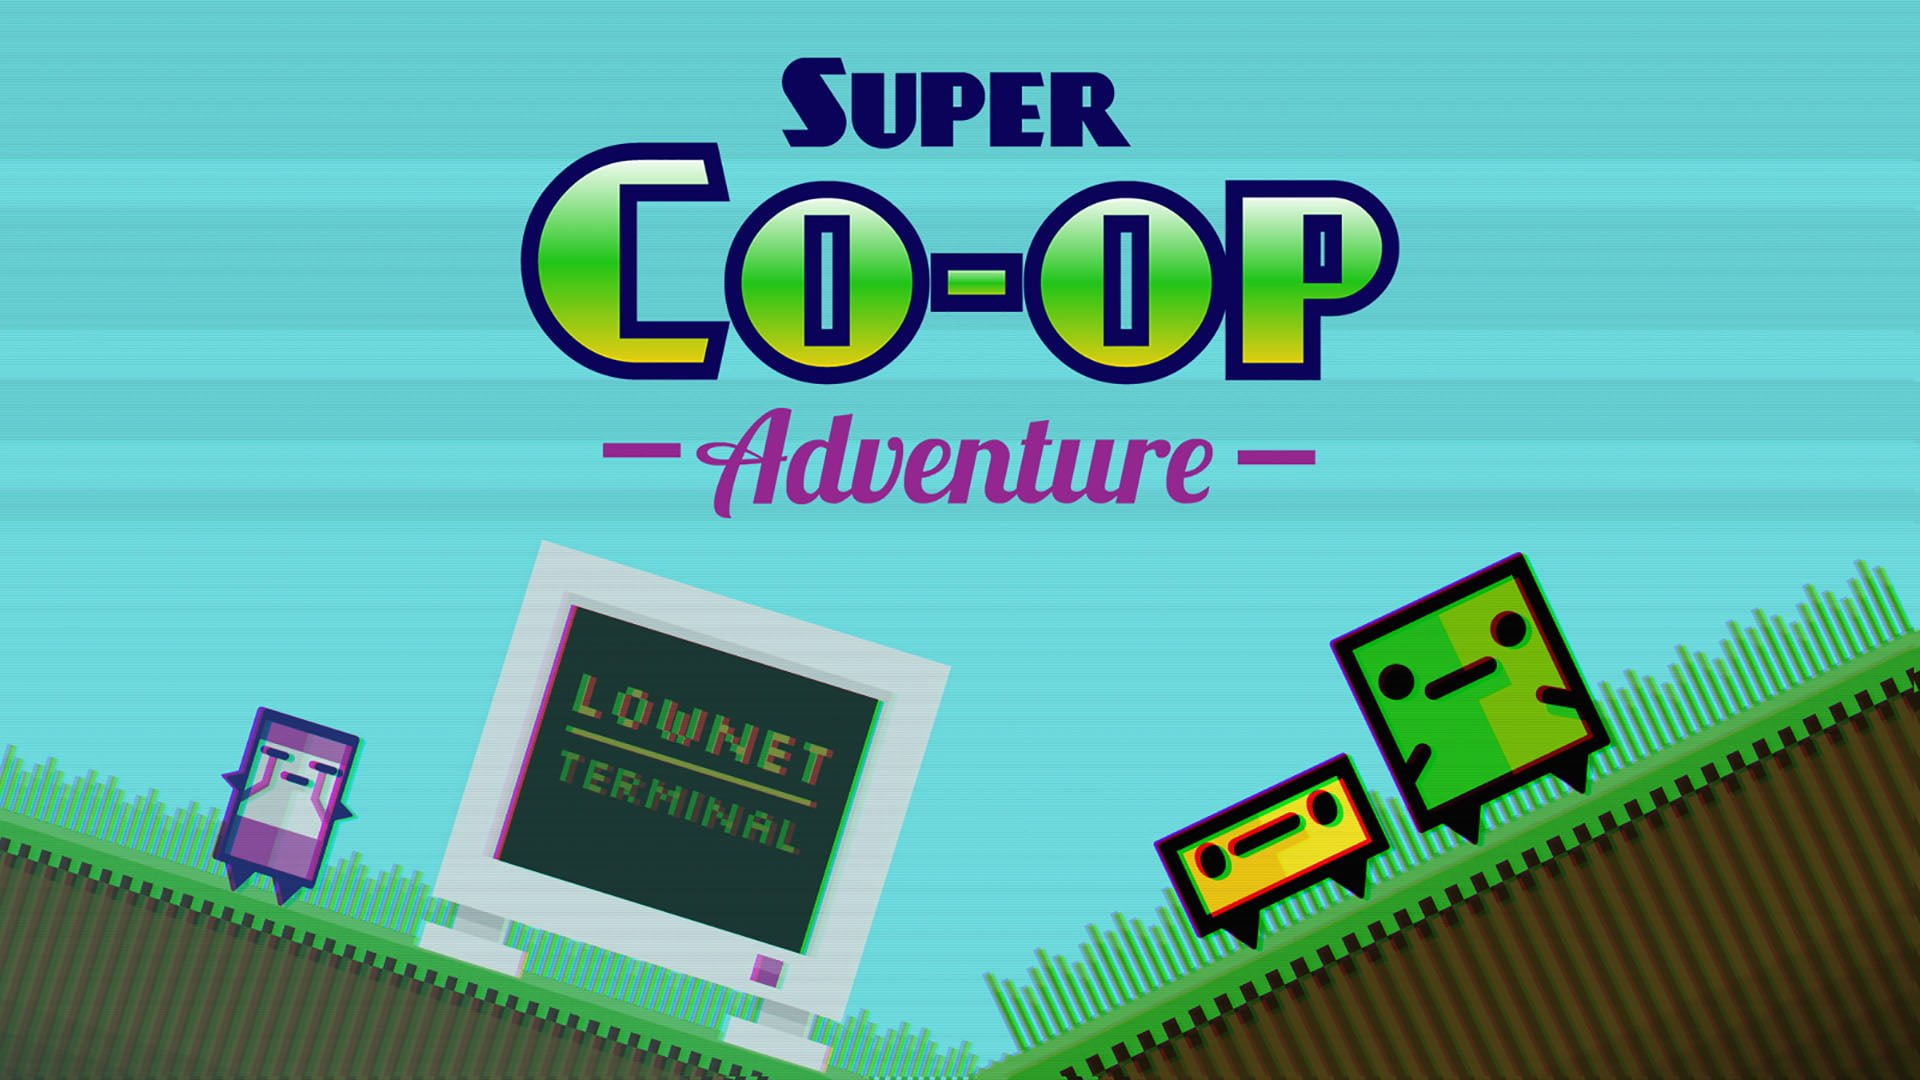 Super Co-op Adventure (PC) Preview